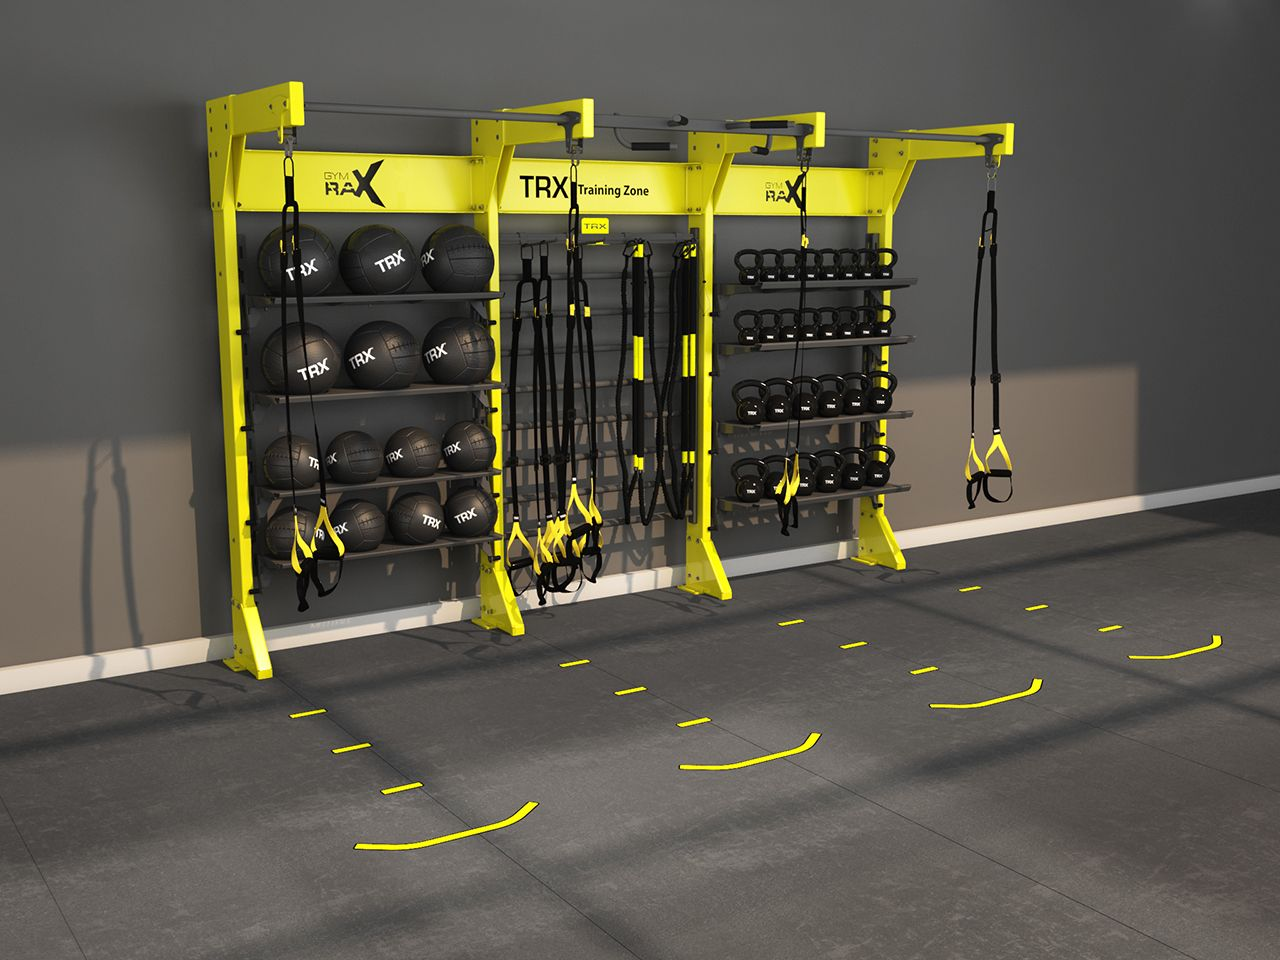 Design gym rax trx storage and suspension training for Best home gym design ideas